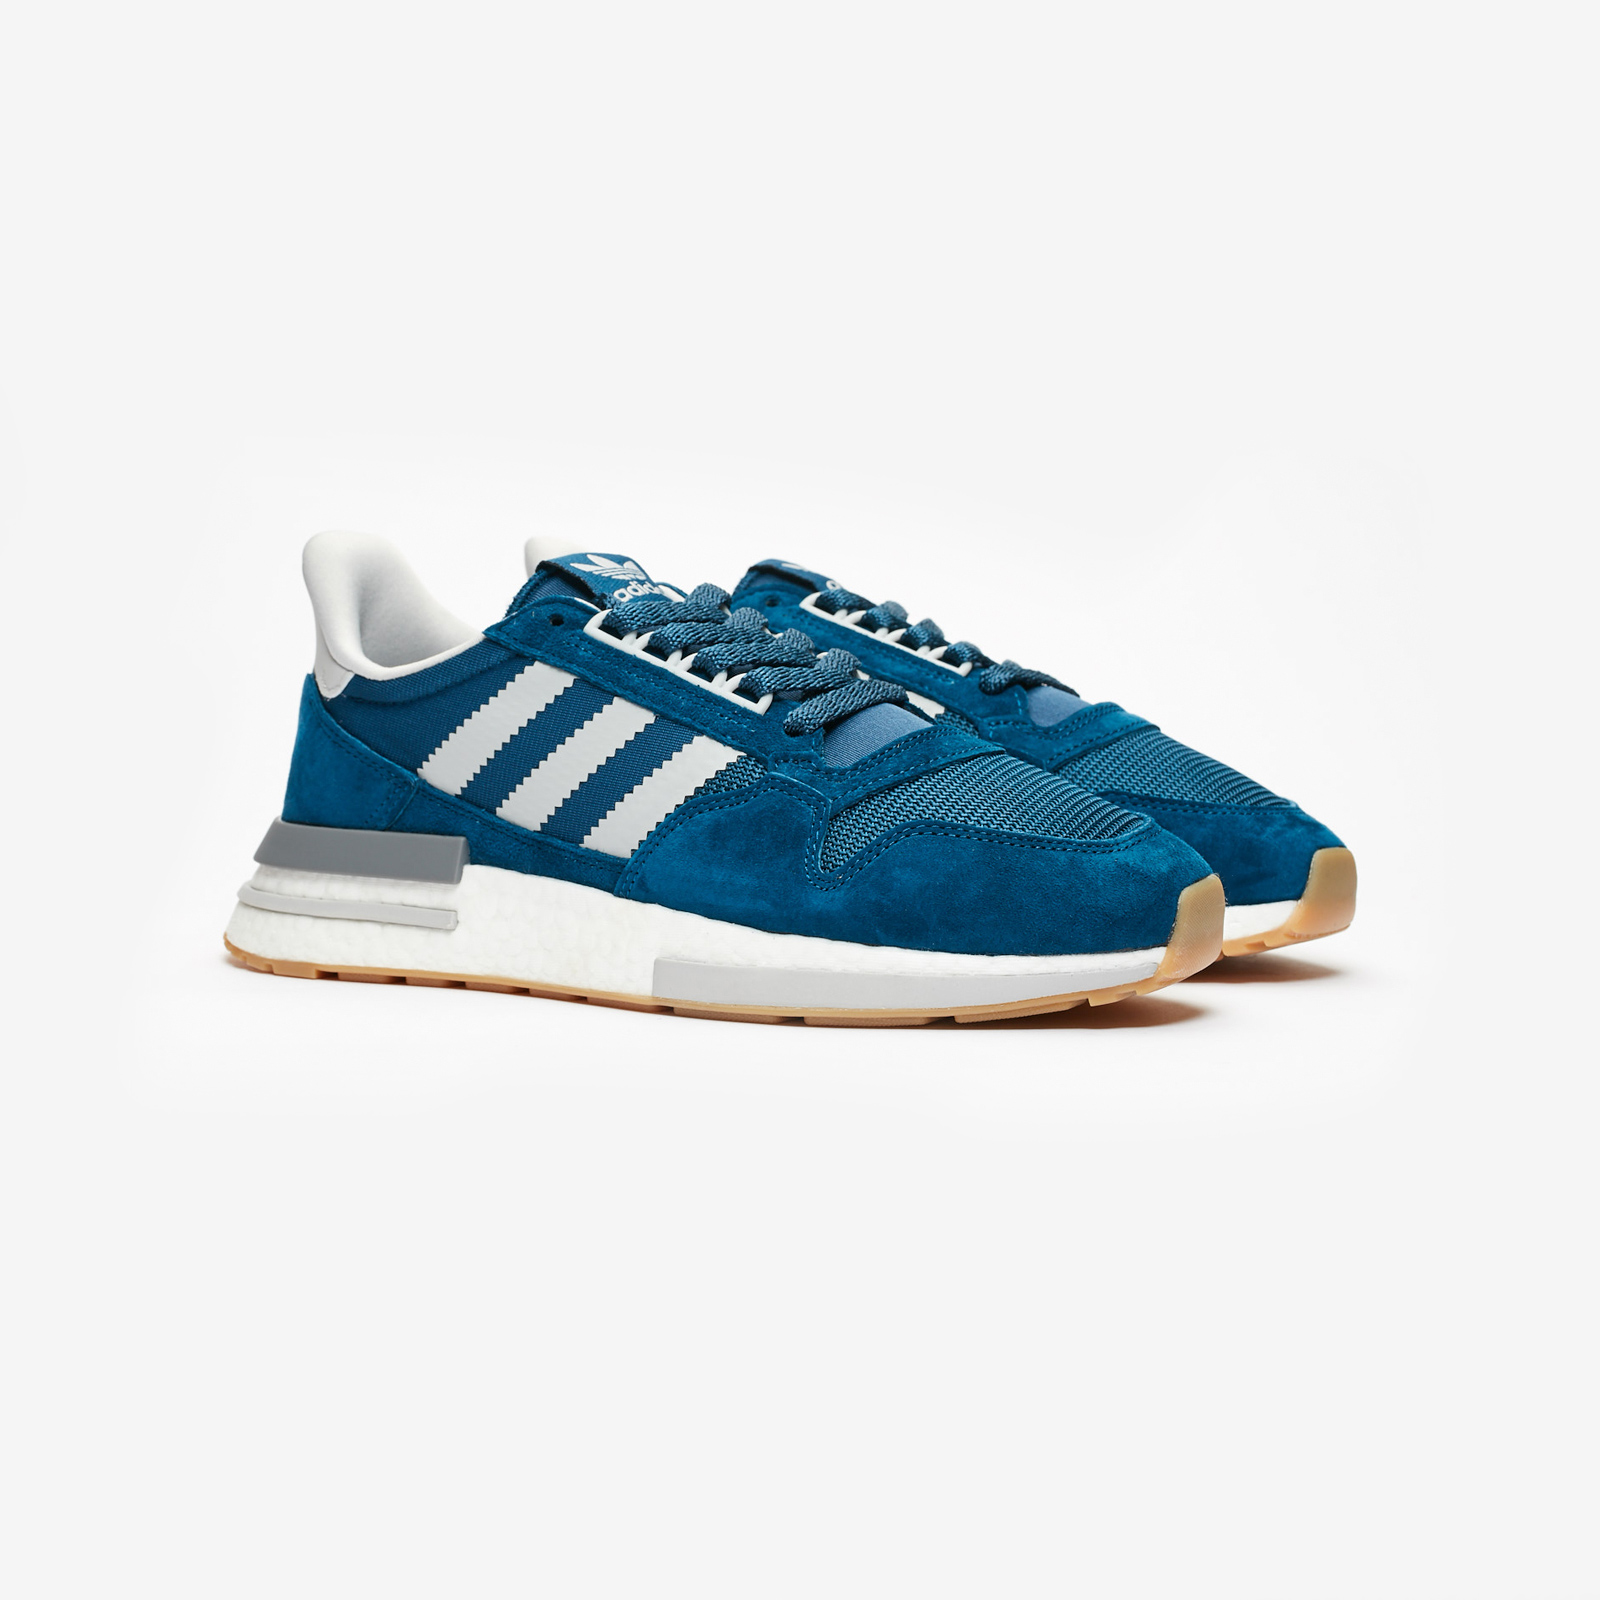 adidas ZX500 RM F36882 Sneakersnstuff I Sneakers